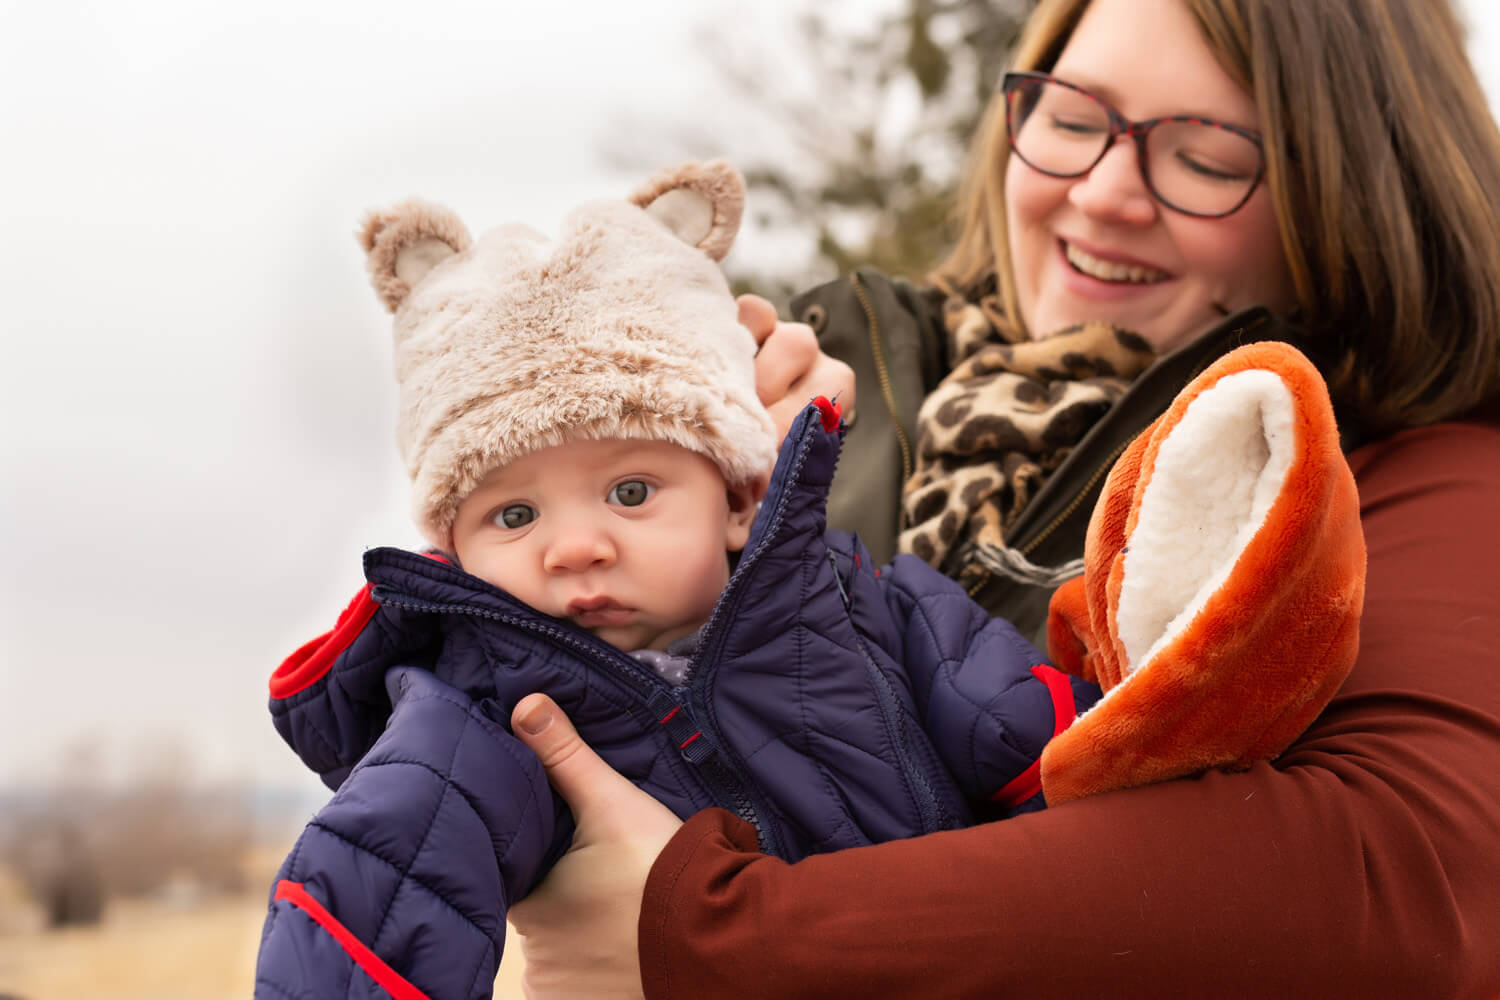 Portrait of a mama holding her baby as he wears a hat with fuzzy ears